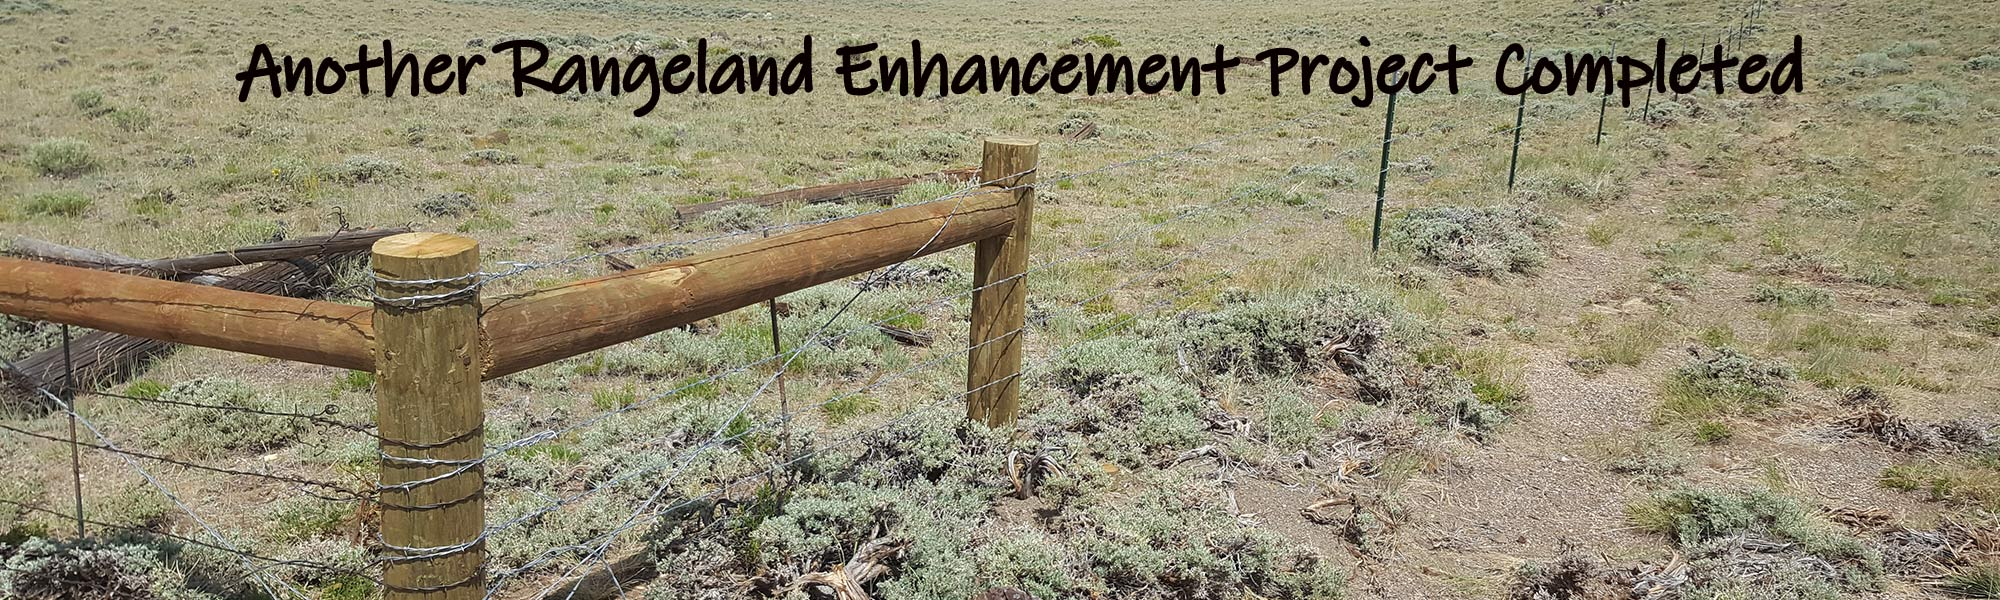 Another-Rangeland-Enhancement-project-completed